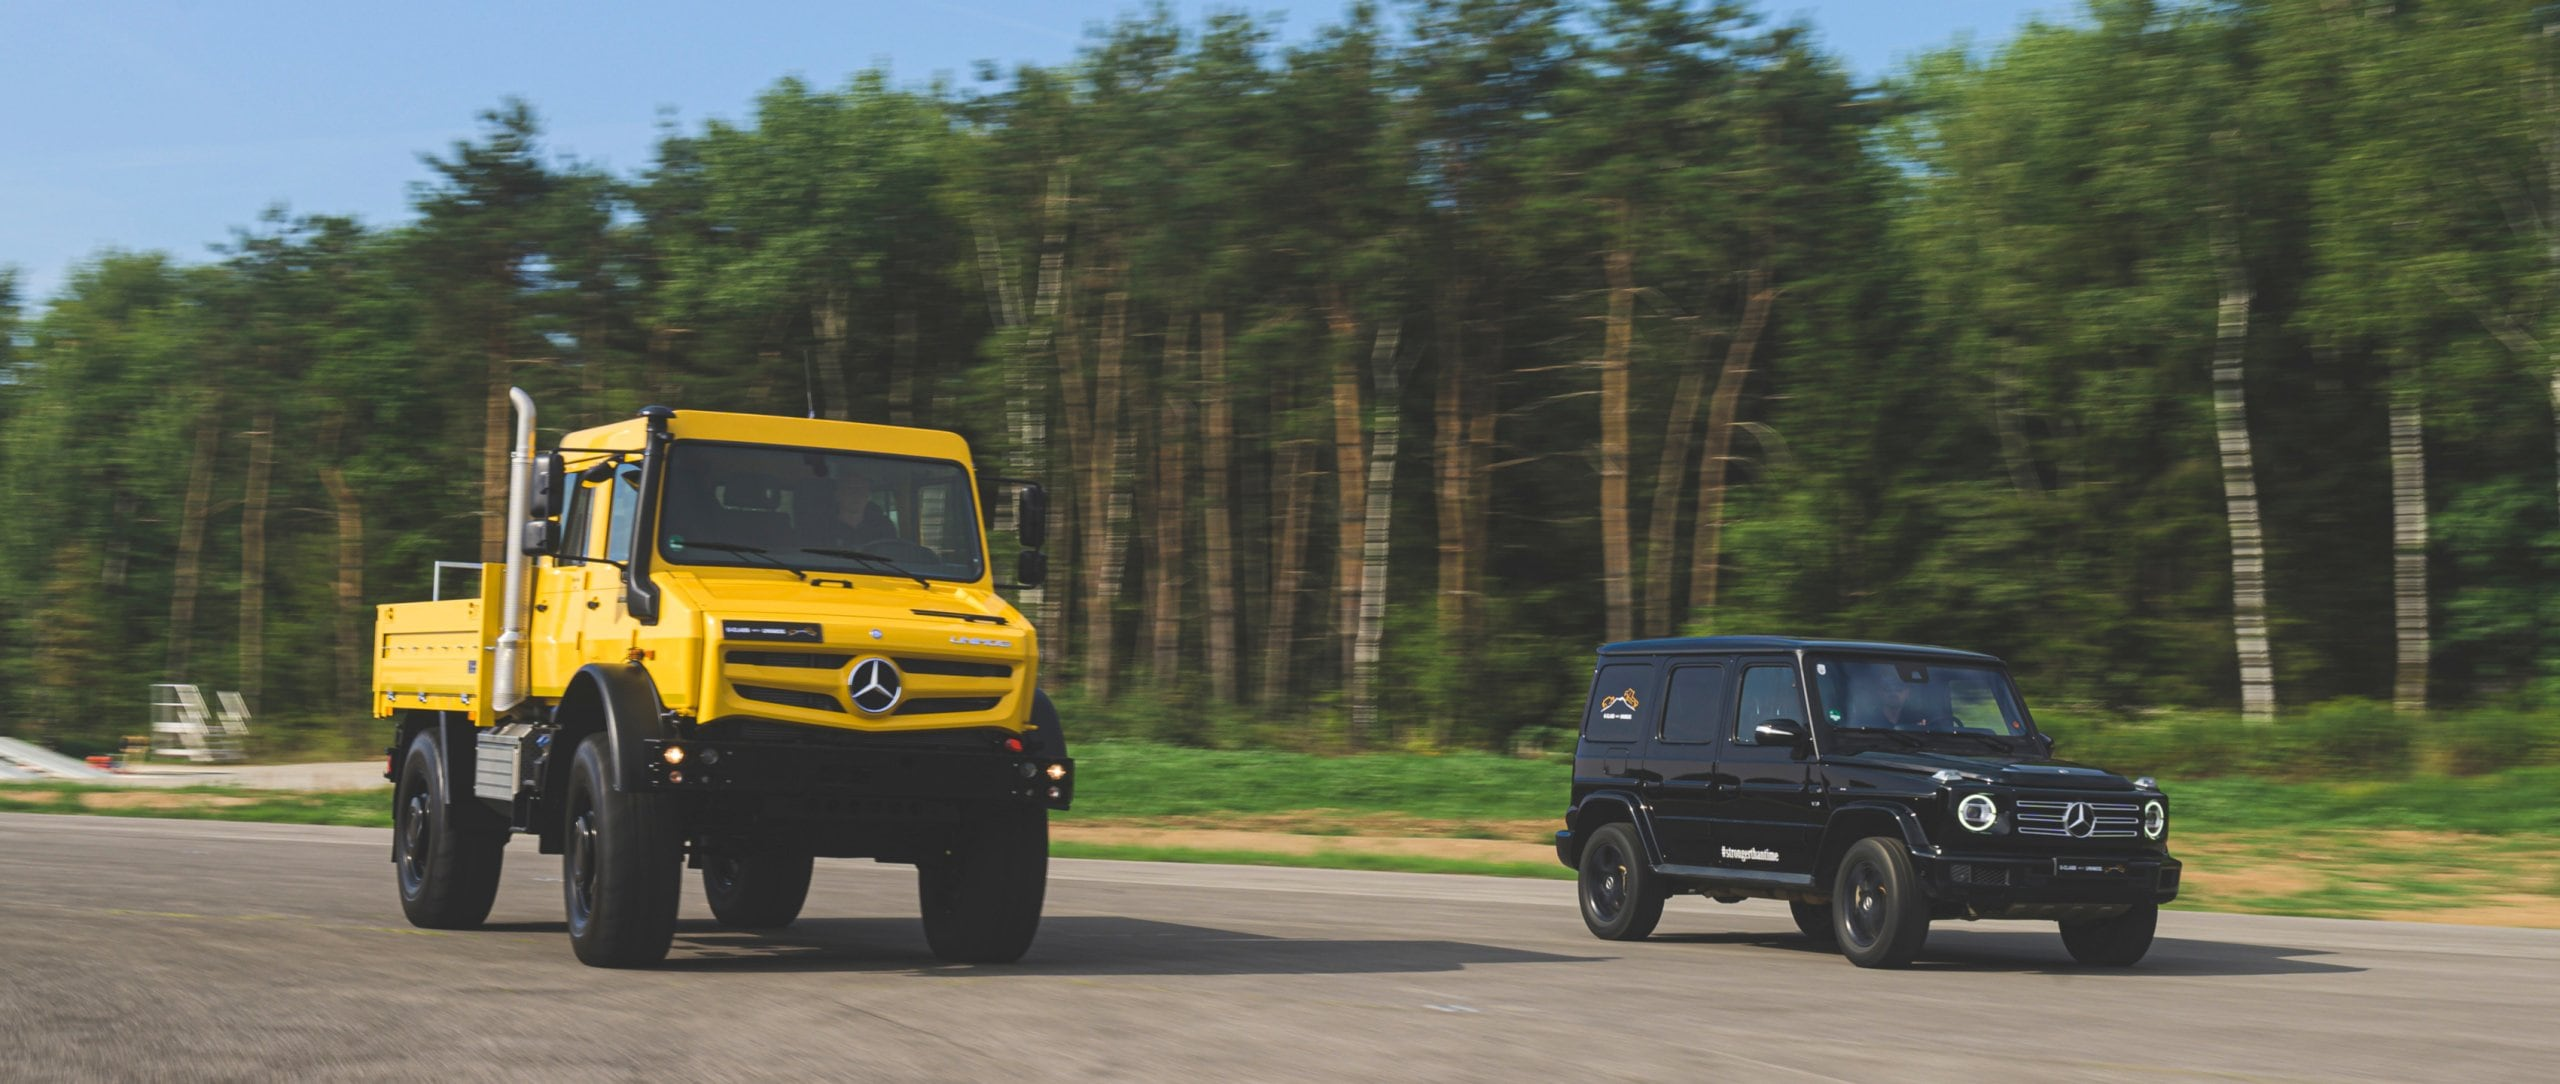 The Mercedes-Benz Unimog UHE 5023 in golden yellow and the Mercedes-Benz G-Class (W 463) in black.